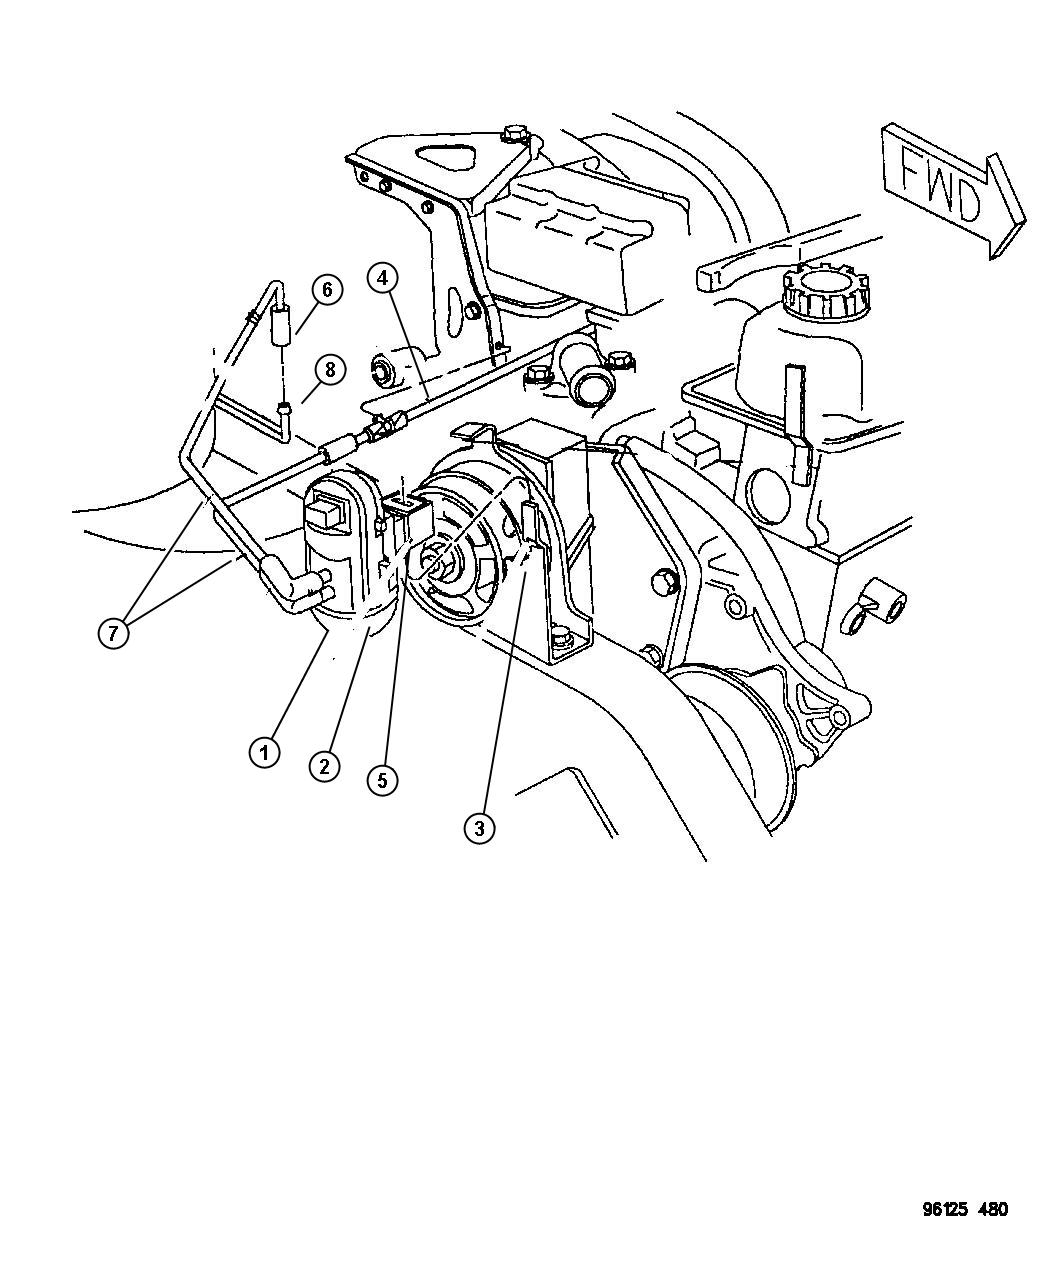 Jd 410 Engine Wiring Diagram